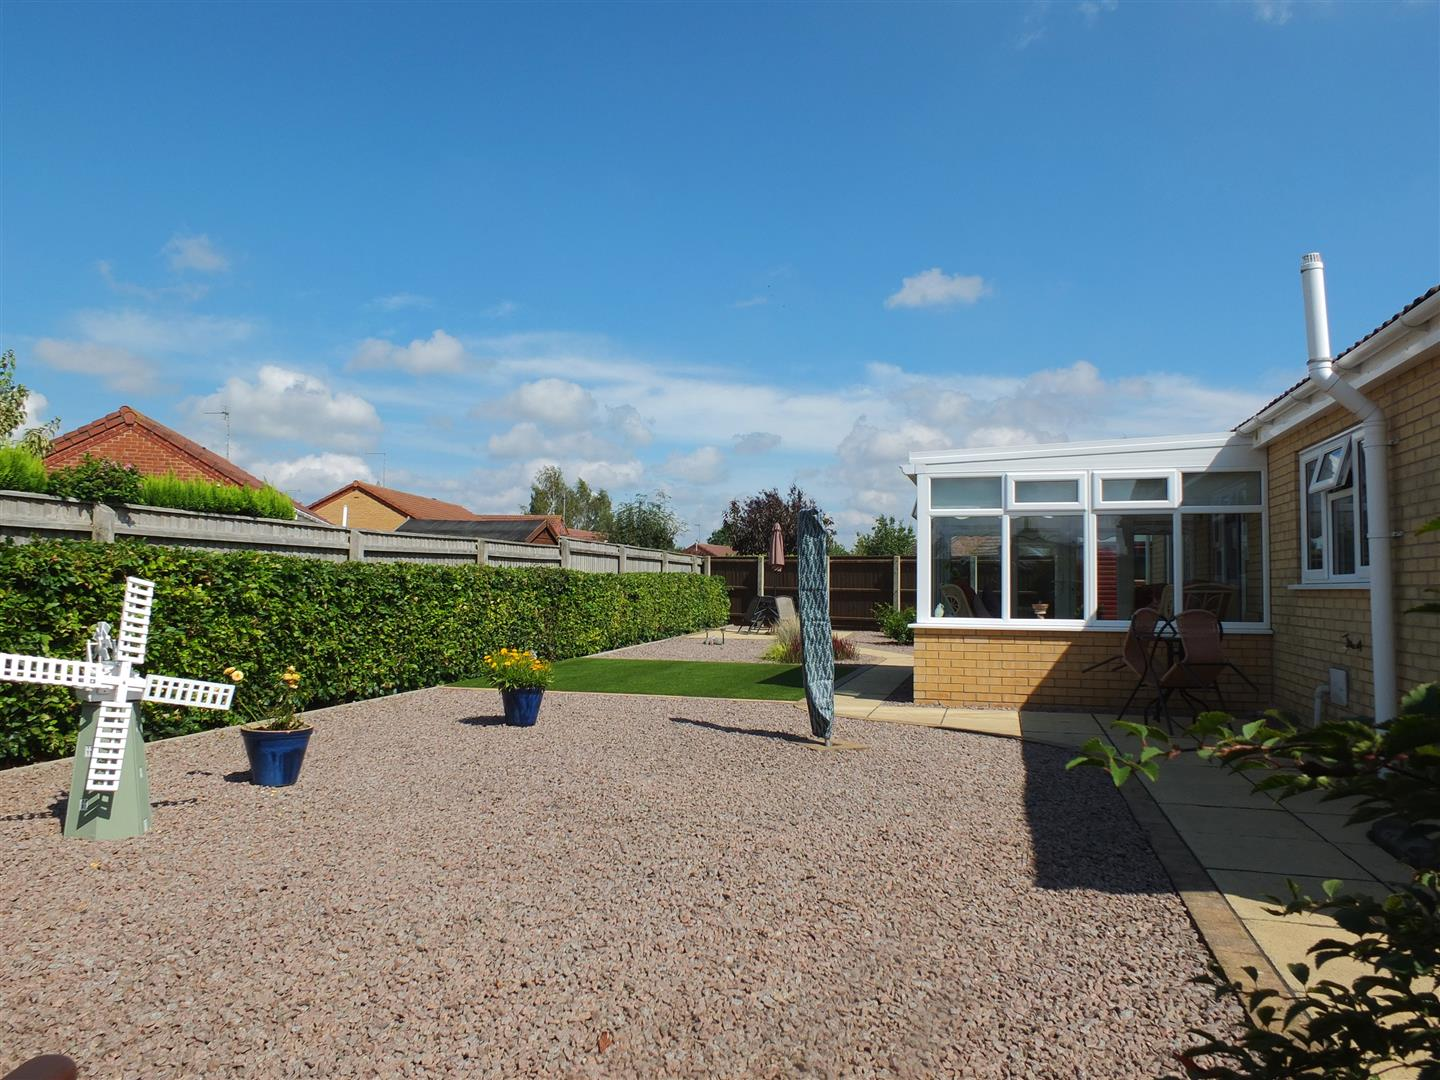 3 bed detached bungalow for sale in Long Sutton Spalding, PE12 9FT  - Property Image 16